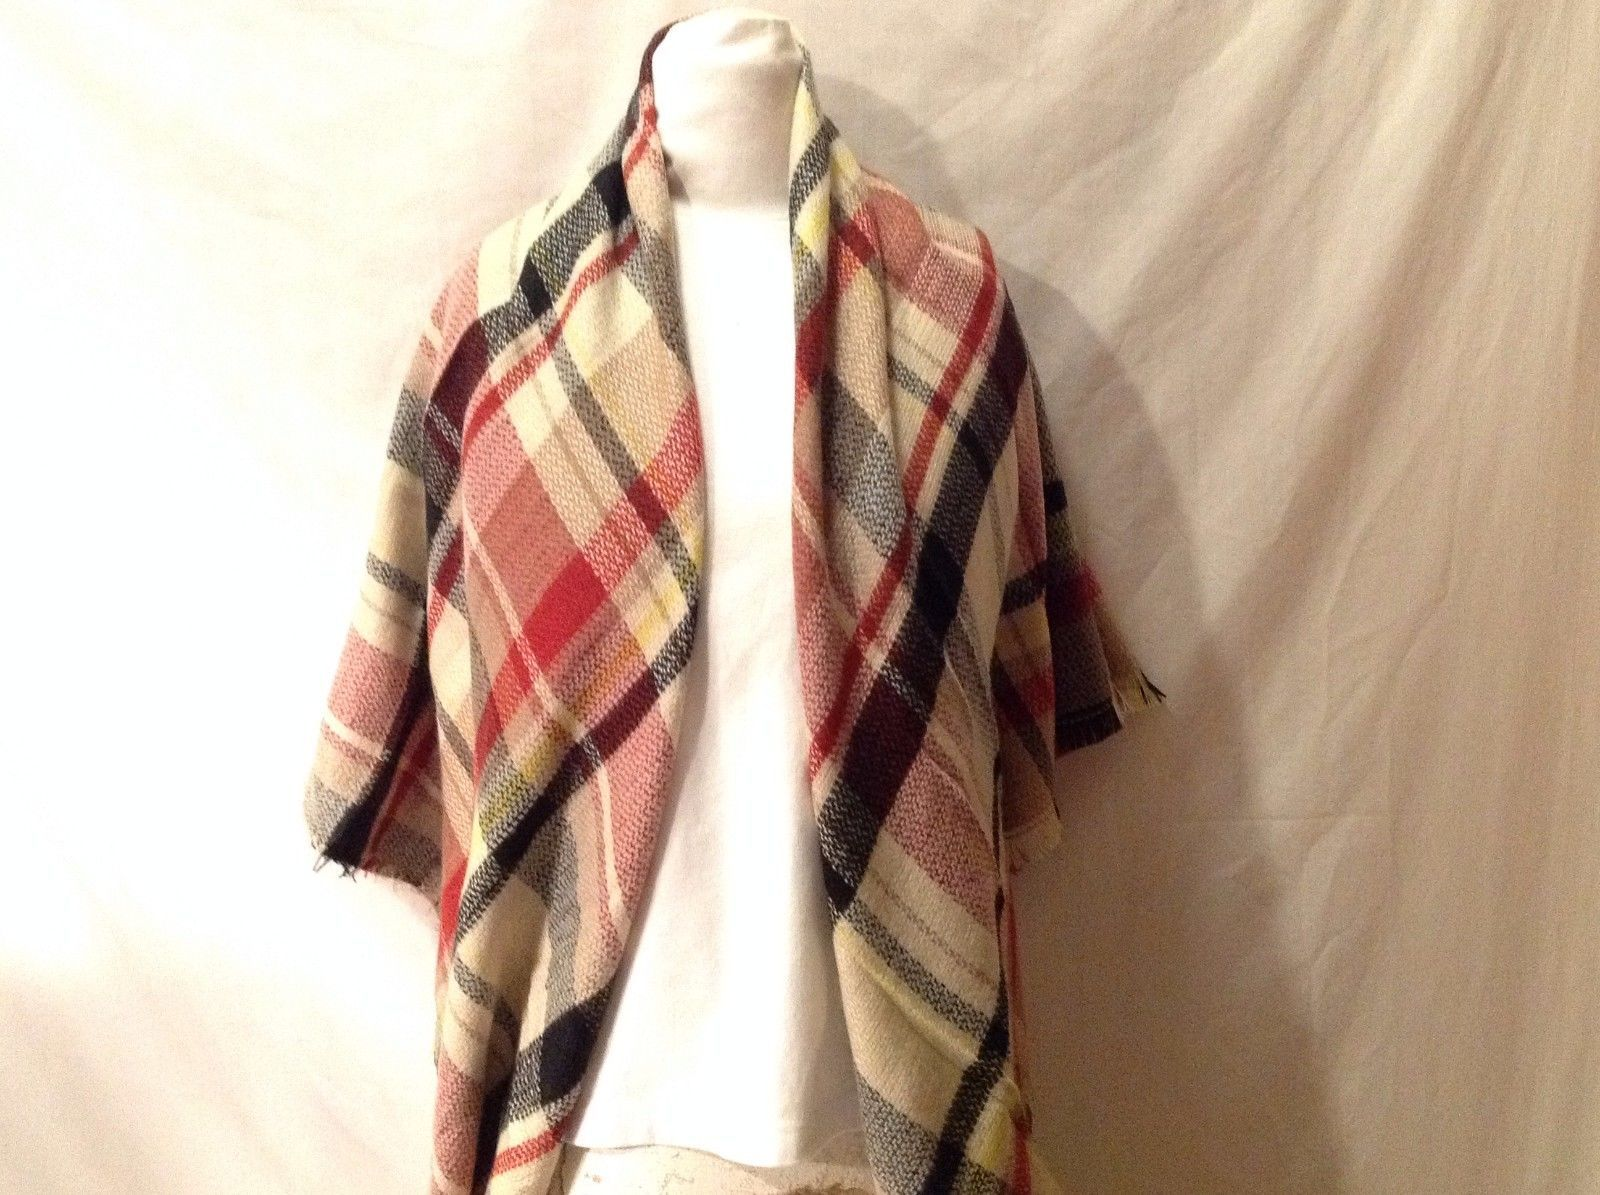 Plaid Pattern Blanket Scarf With Base Color Tan Black Red Yellow Fringe On Edges